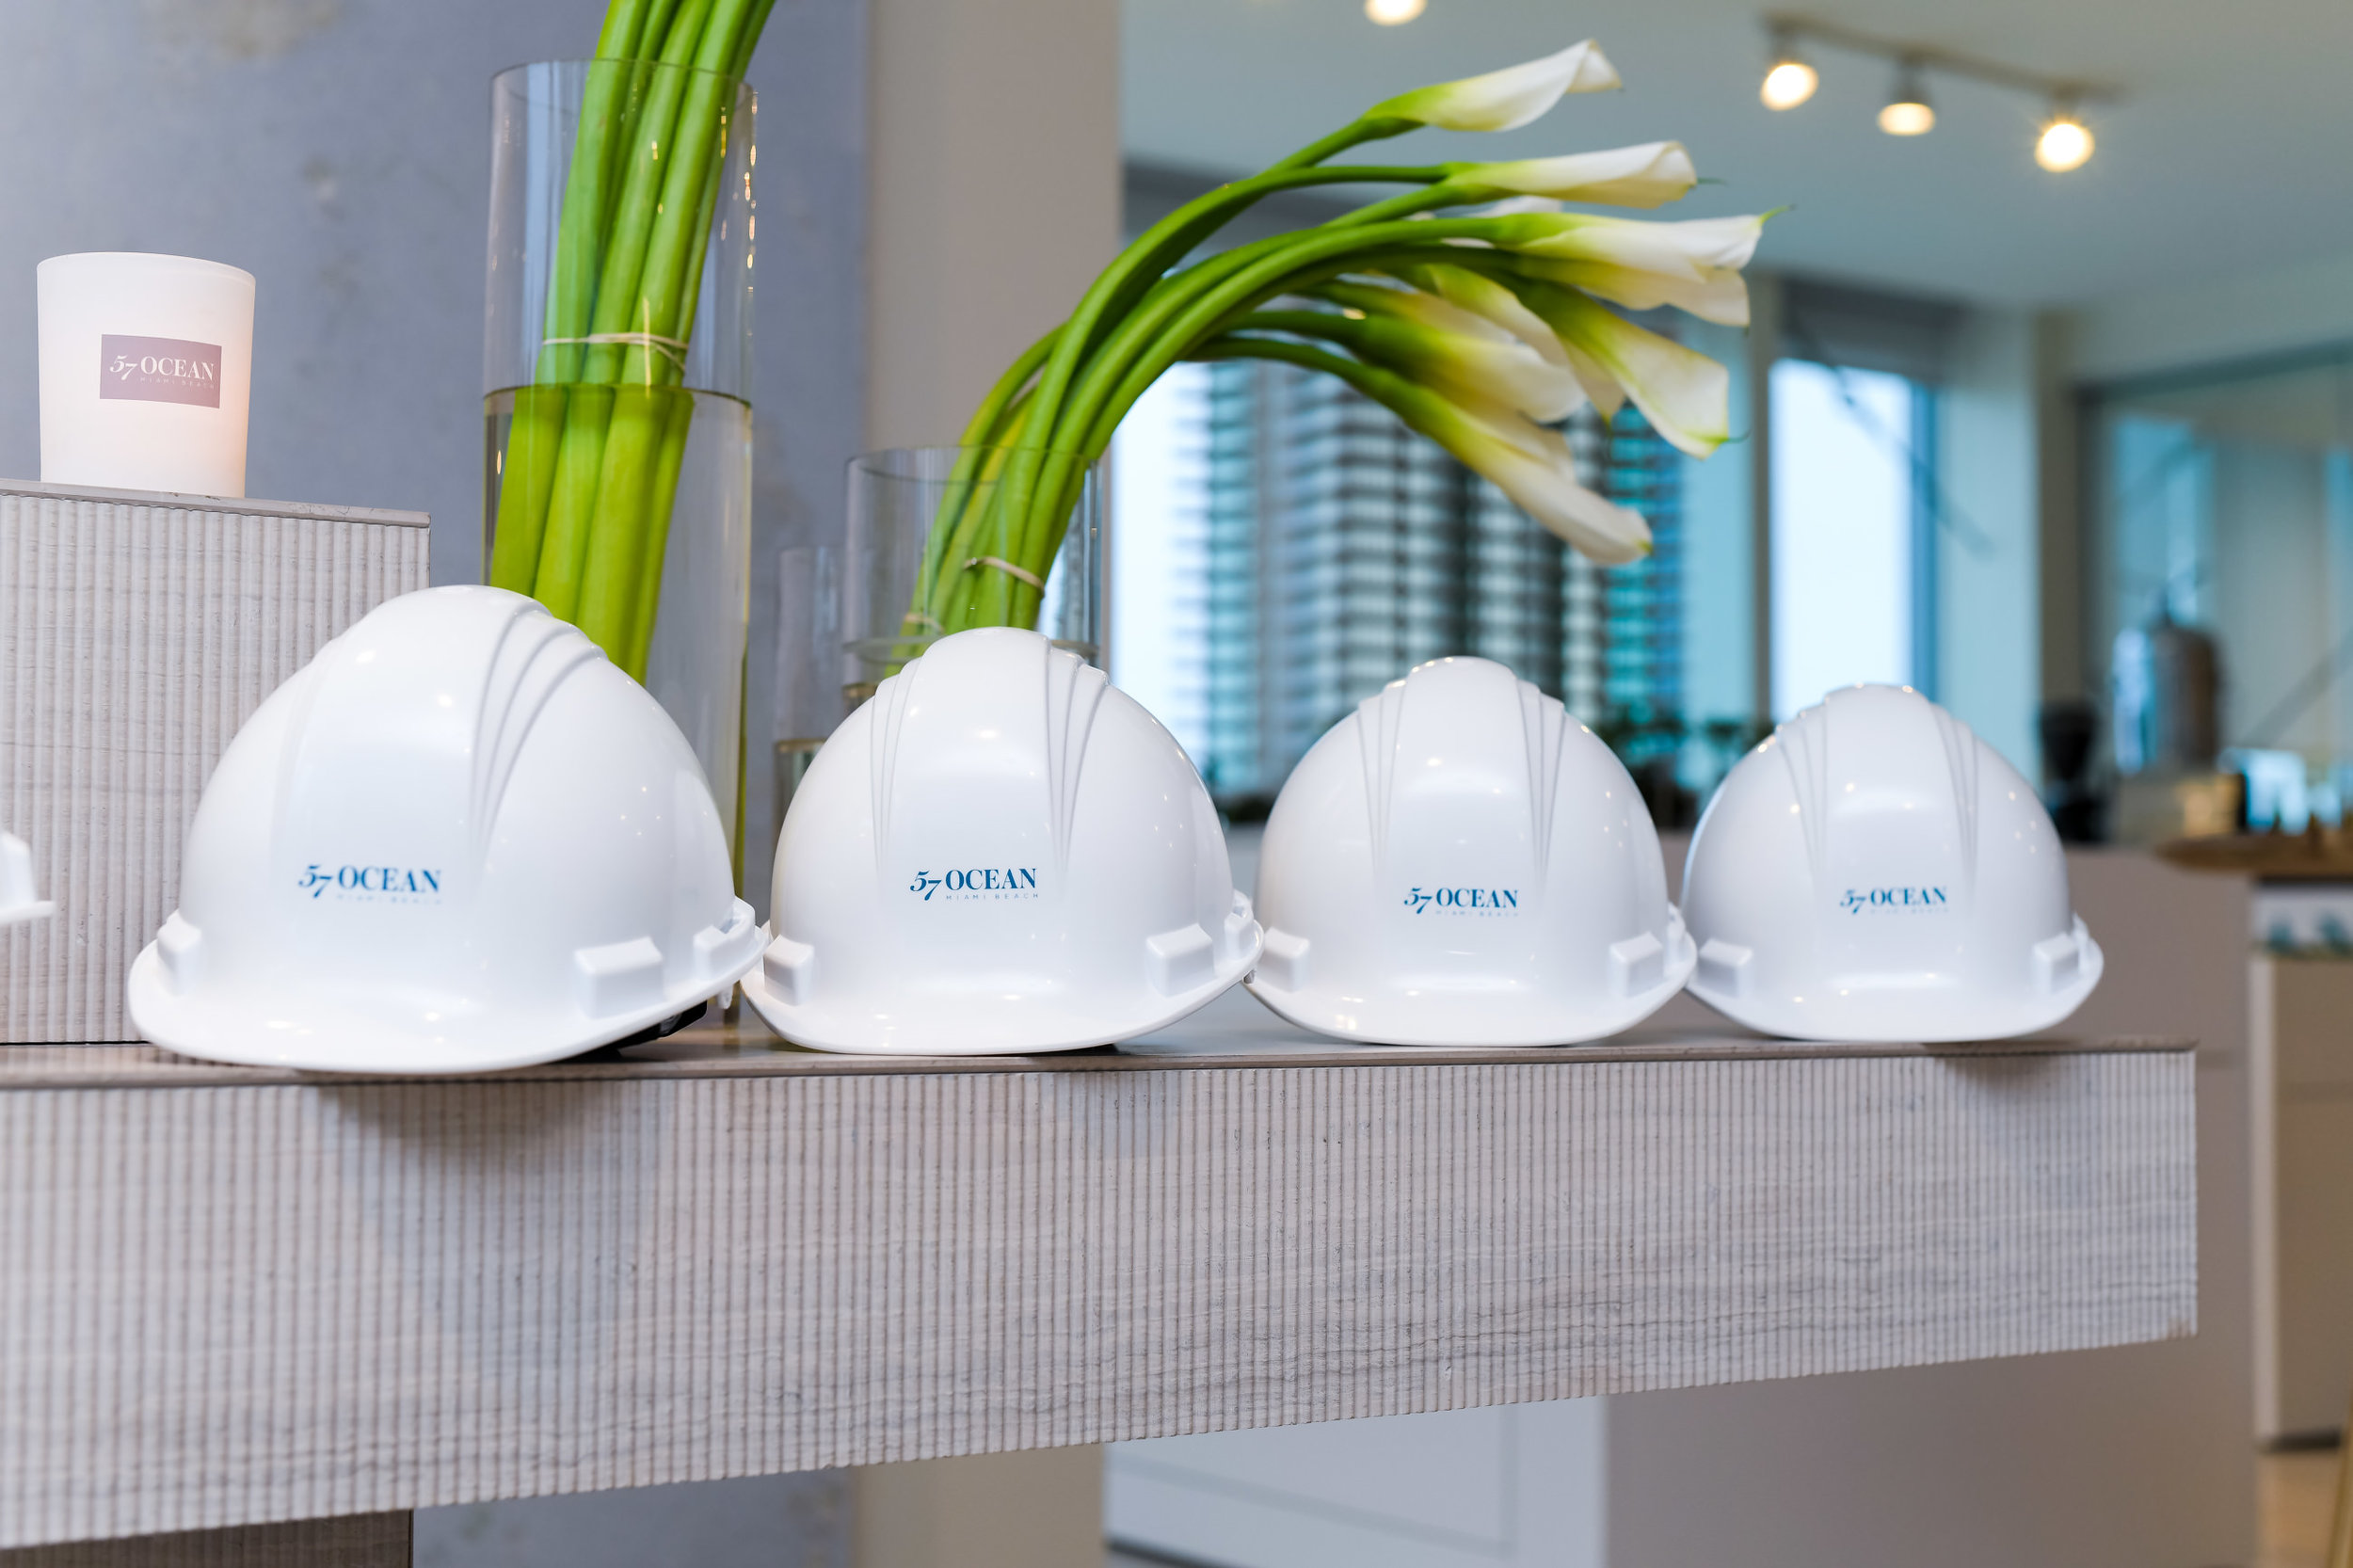 Multiplan Real Estate Asset Management Breaks Ground On 57 Ocean In Miami Beach